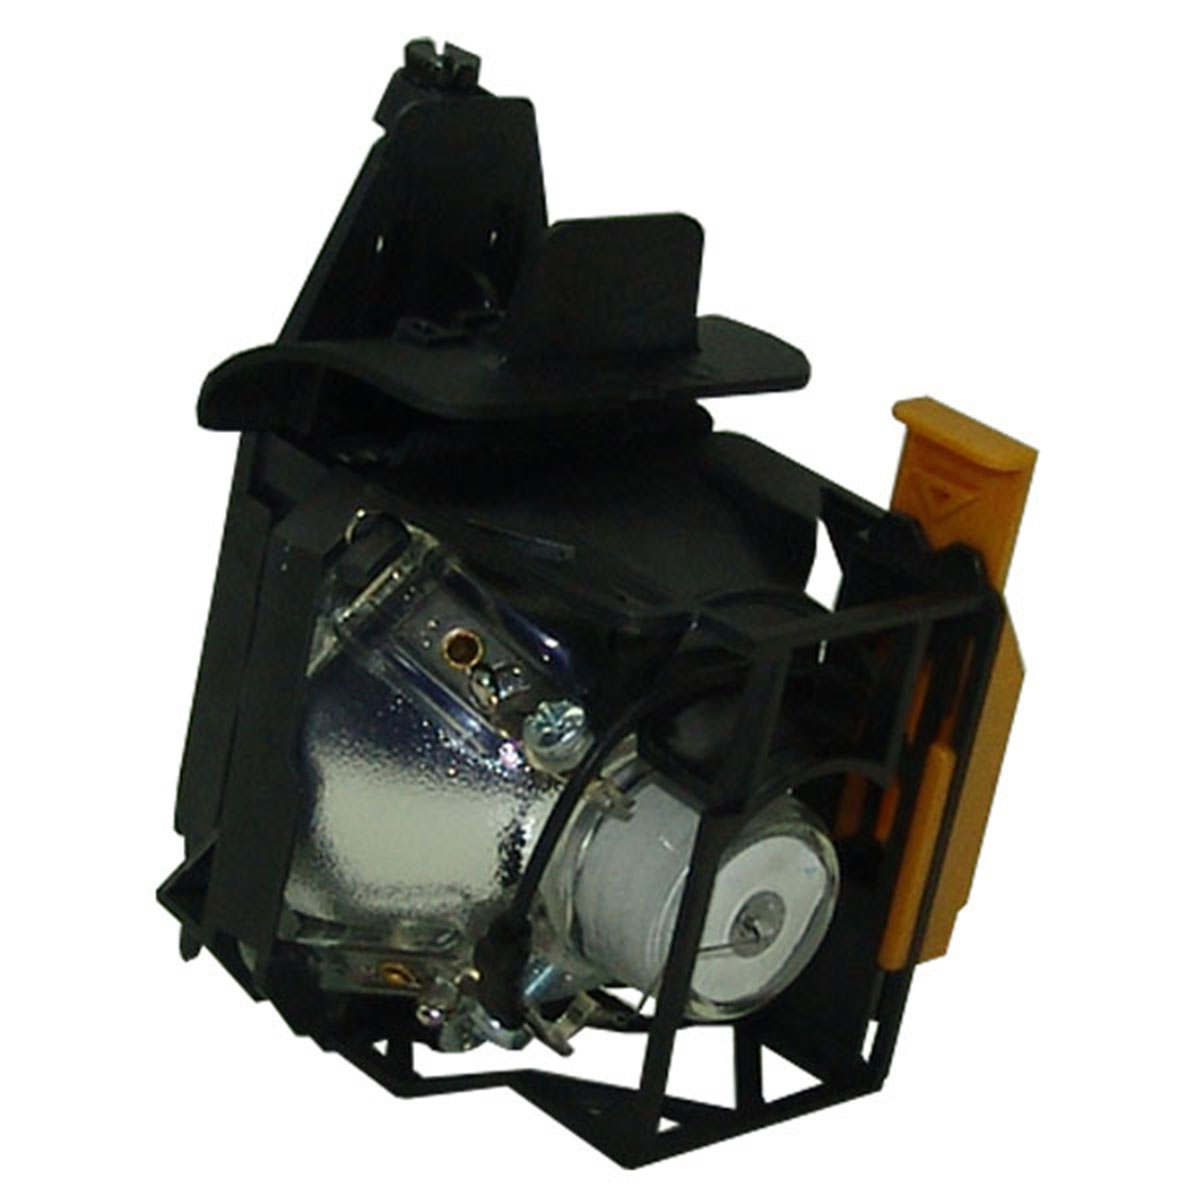 Original Philips Projector Lamp Replacement with Housing for IBM 33L3456 - image 4 of 5